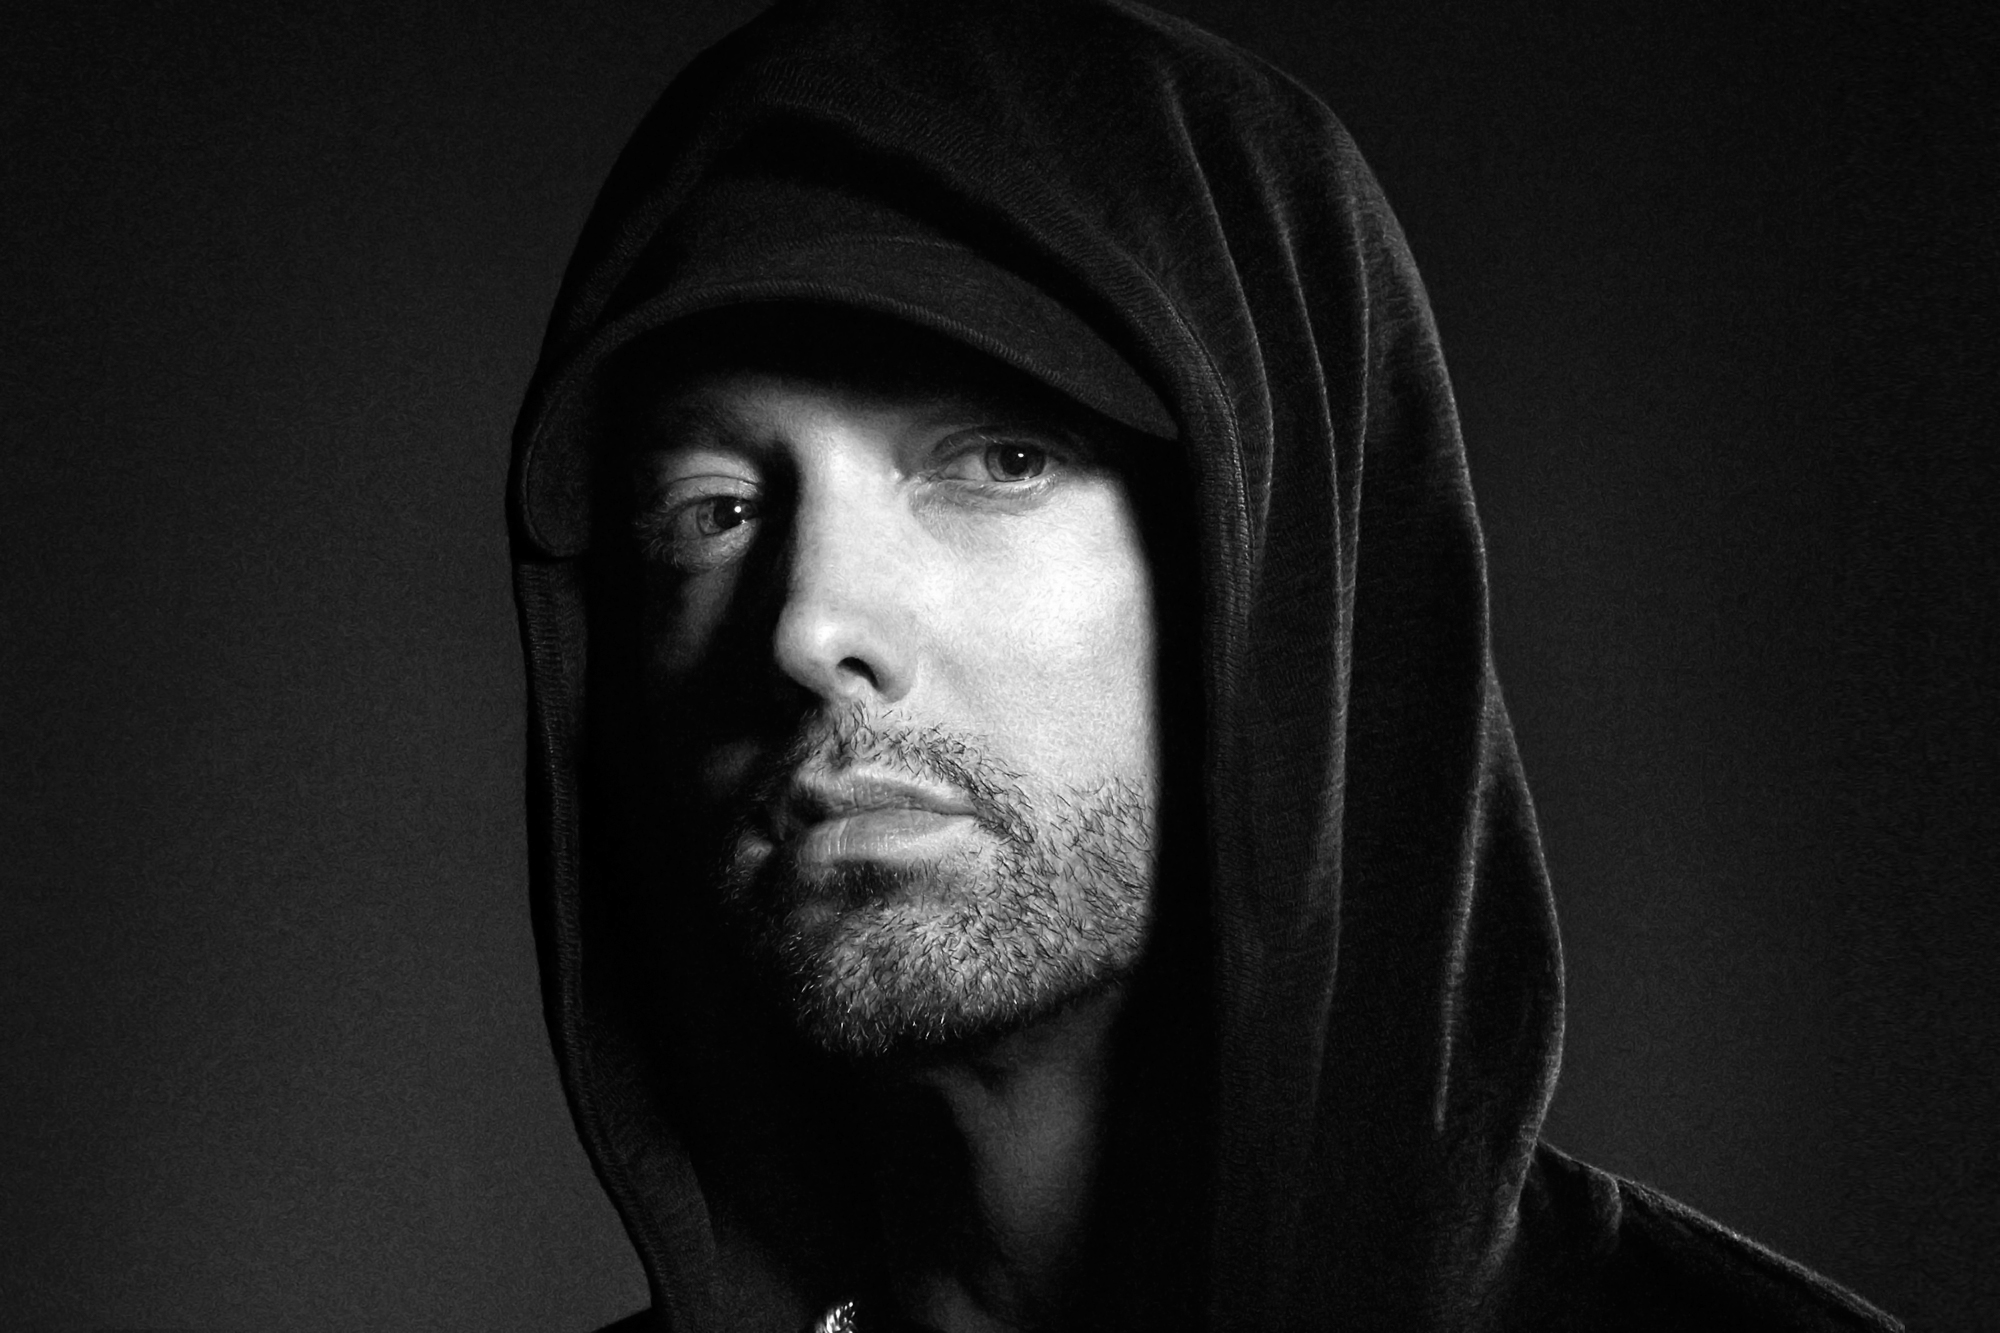 Listen to Detroit rapper Eminem's New surprise album 'Music To Be Murdered By: Side B' 1 MUGIBSON WRITES